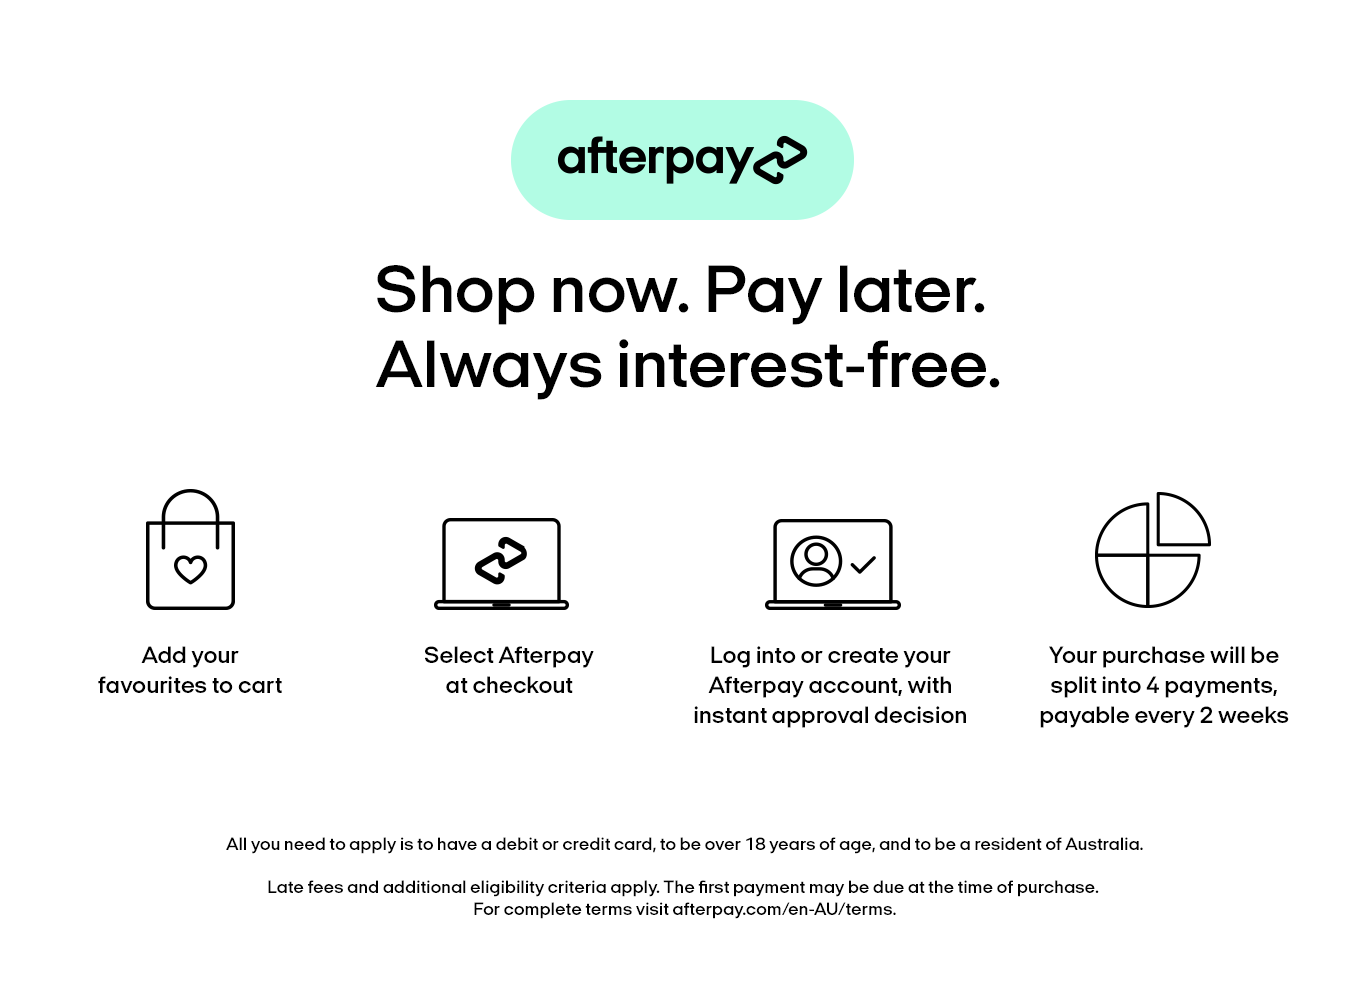 Afterpay Information